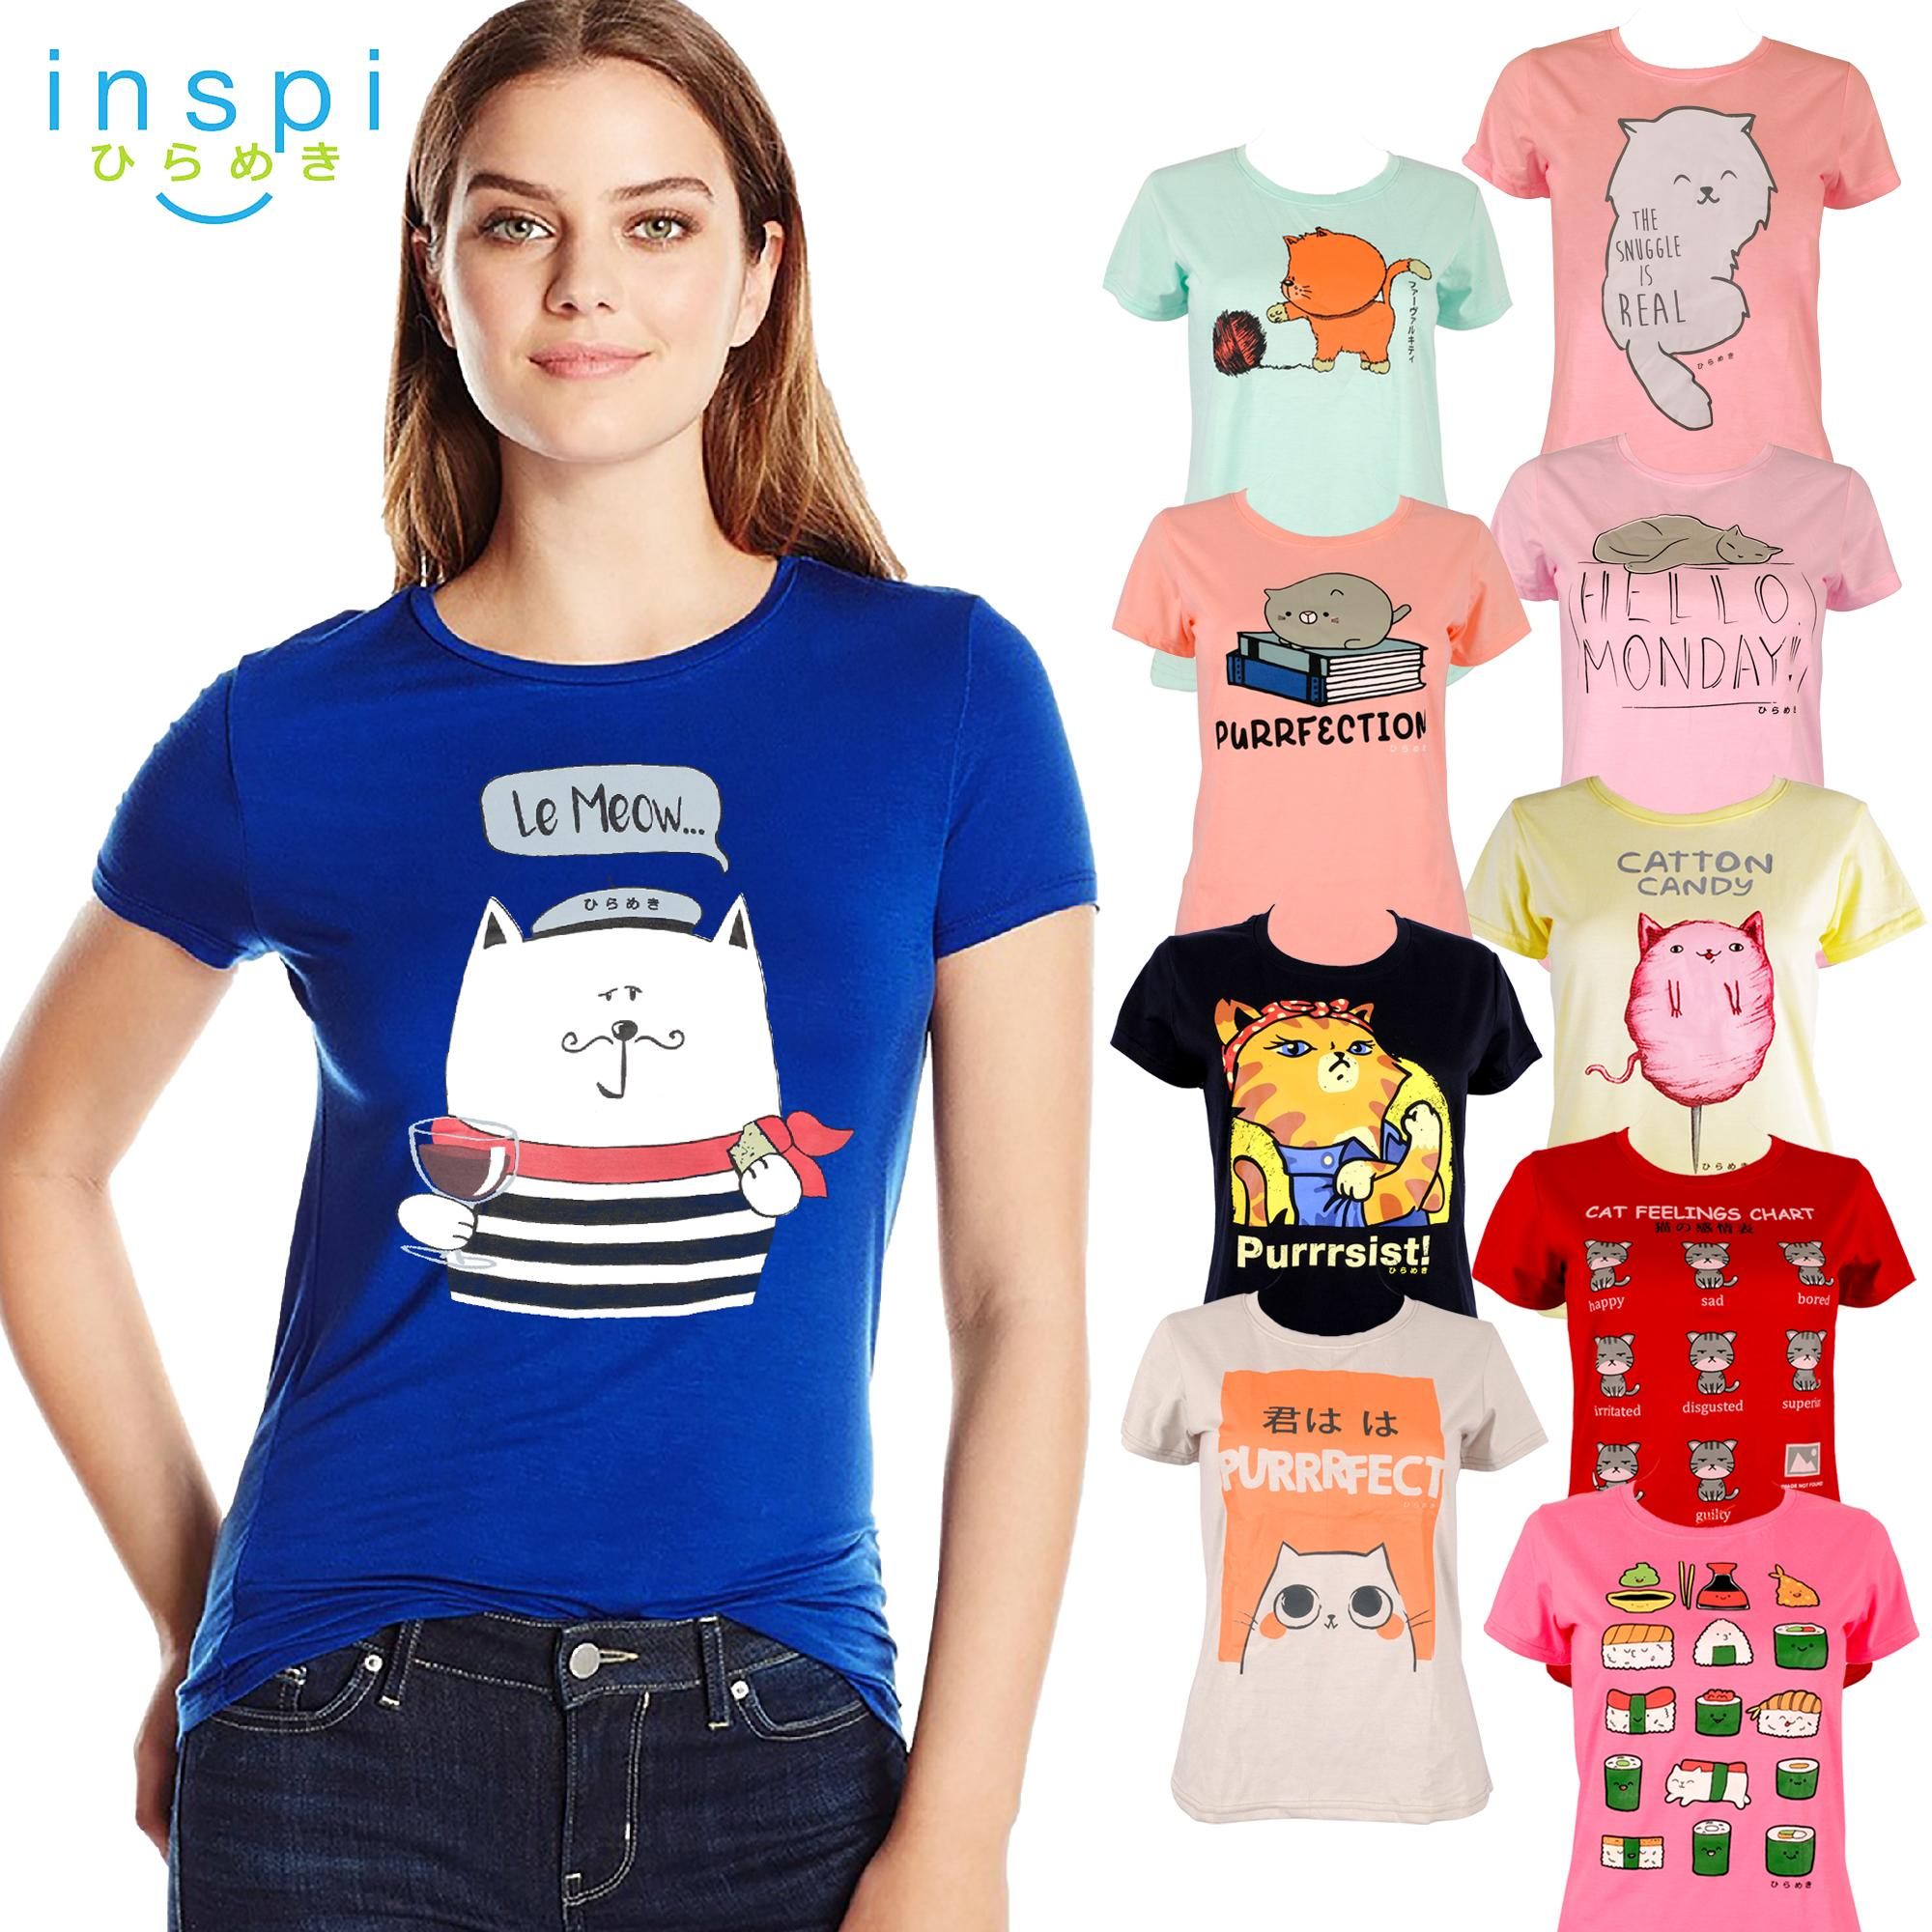 08ab8b273a68 INSPI Tees Ladies Neko Collection tshirt printed graphic tee Ladies t shirt  shirts women tshirts for